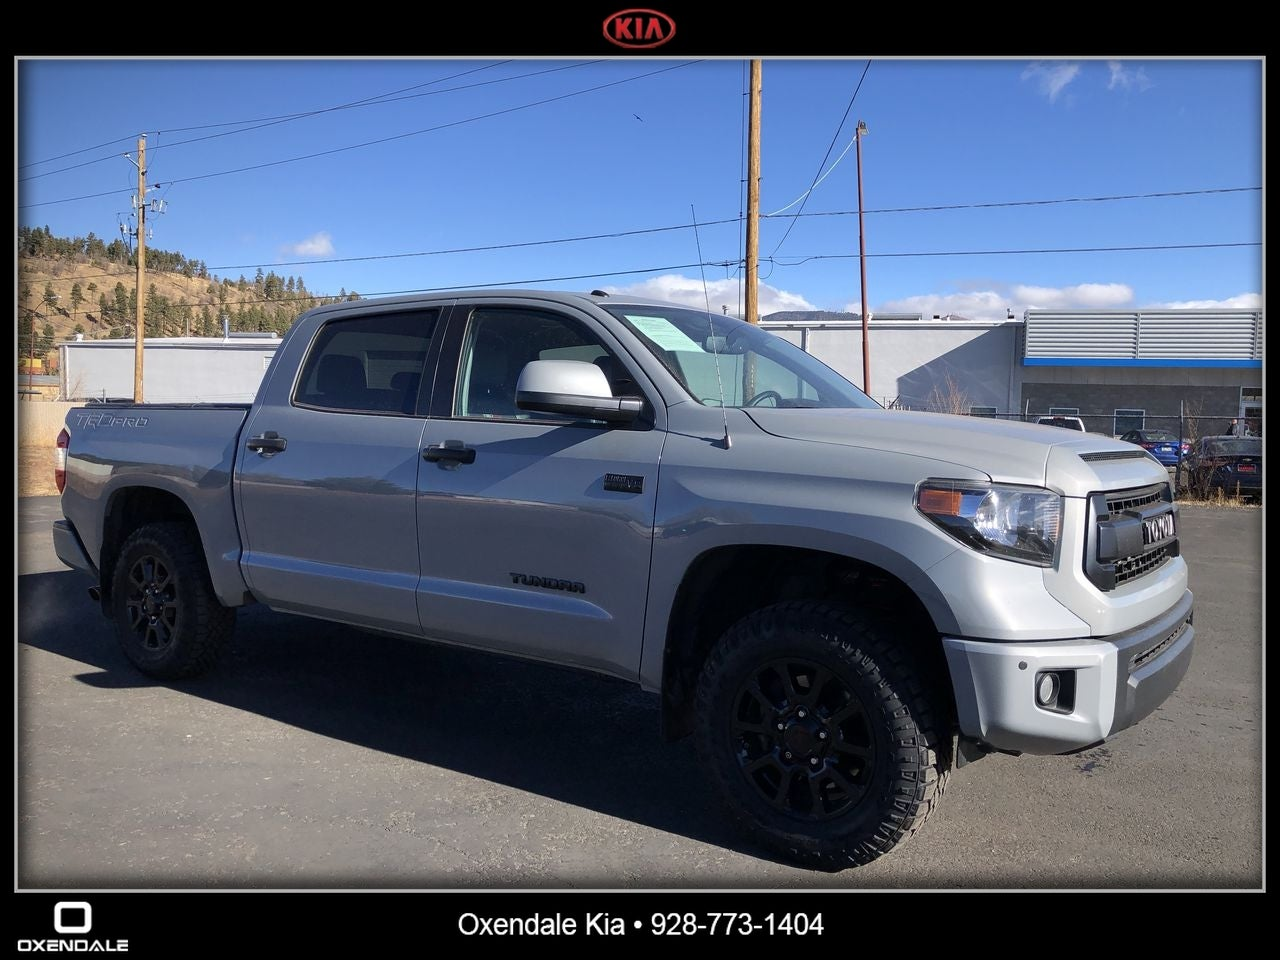 2017 Toyota Tundra Trd Pro Crewmax 5 5 Bed 5 7l In Flagstaff Az Flagstaff Toyota Tundra Oxendale Kia